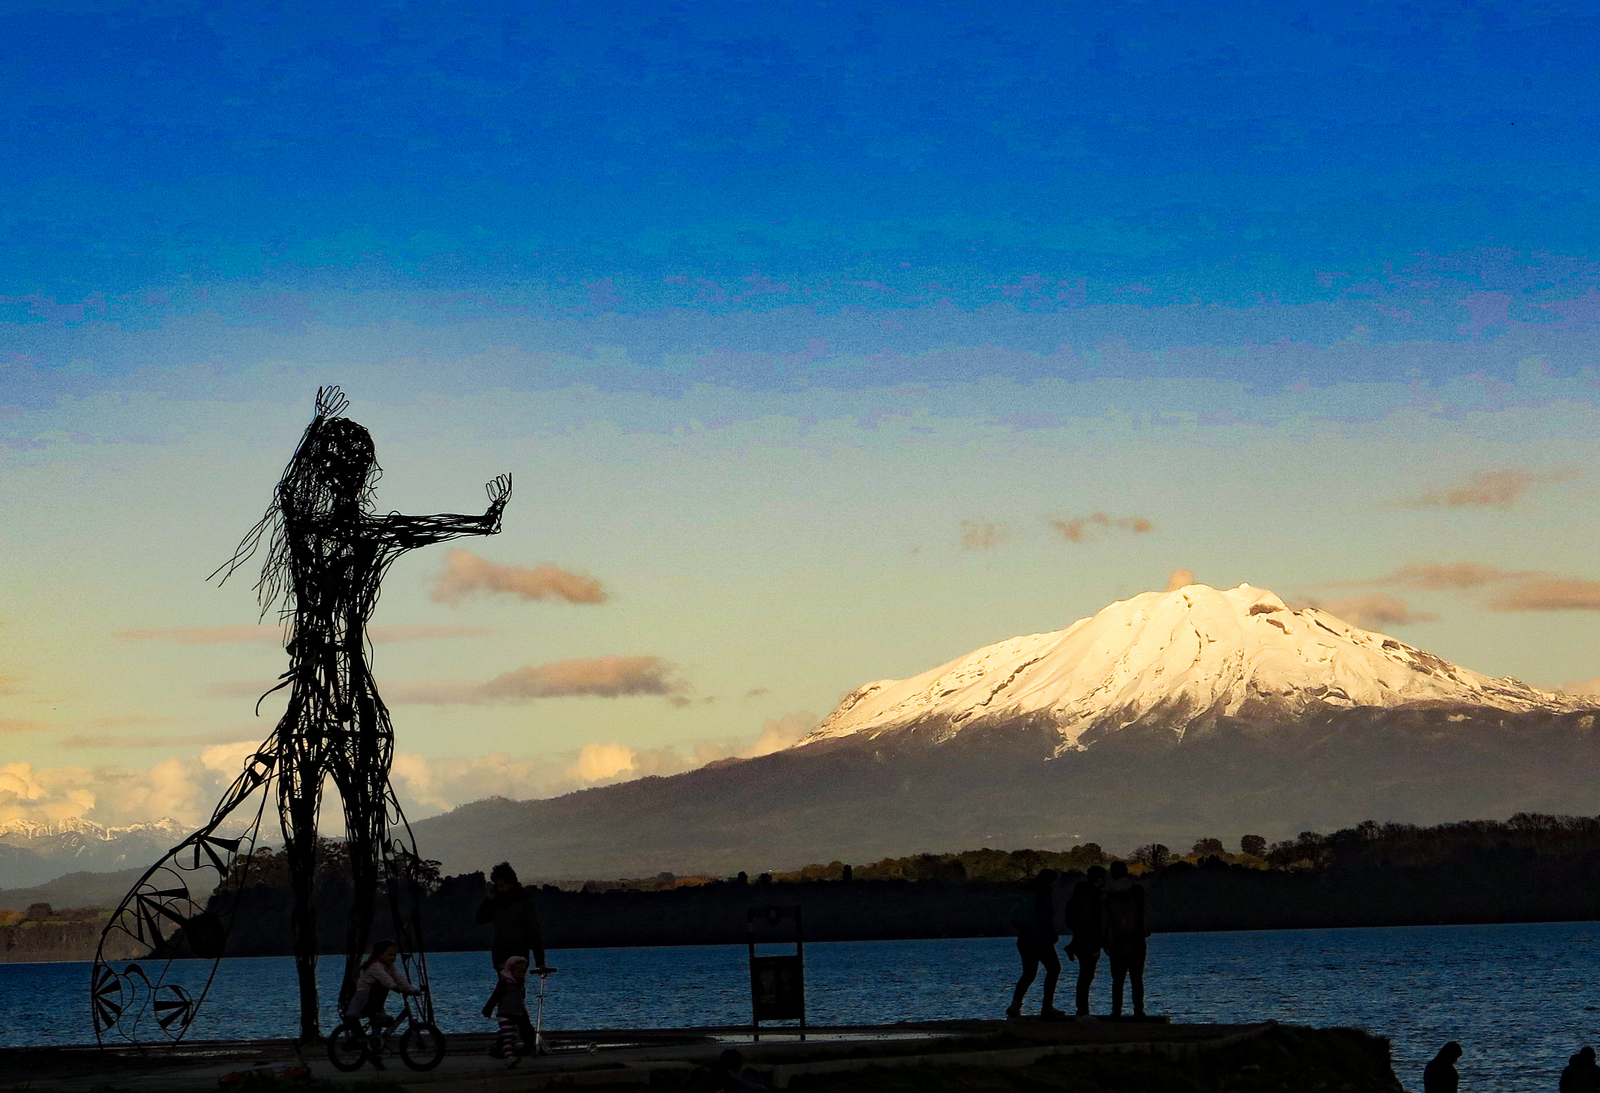 Puerto Varas is a lovely lakeside town inChile, with great nature all around. JIM BYERS PHOTO